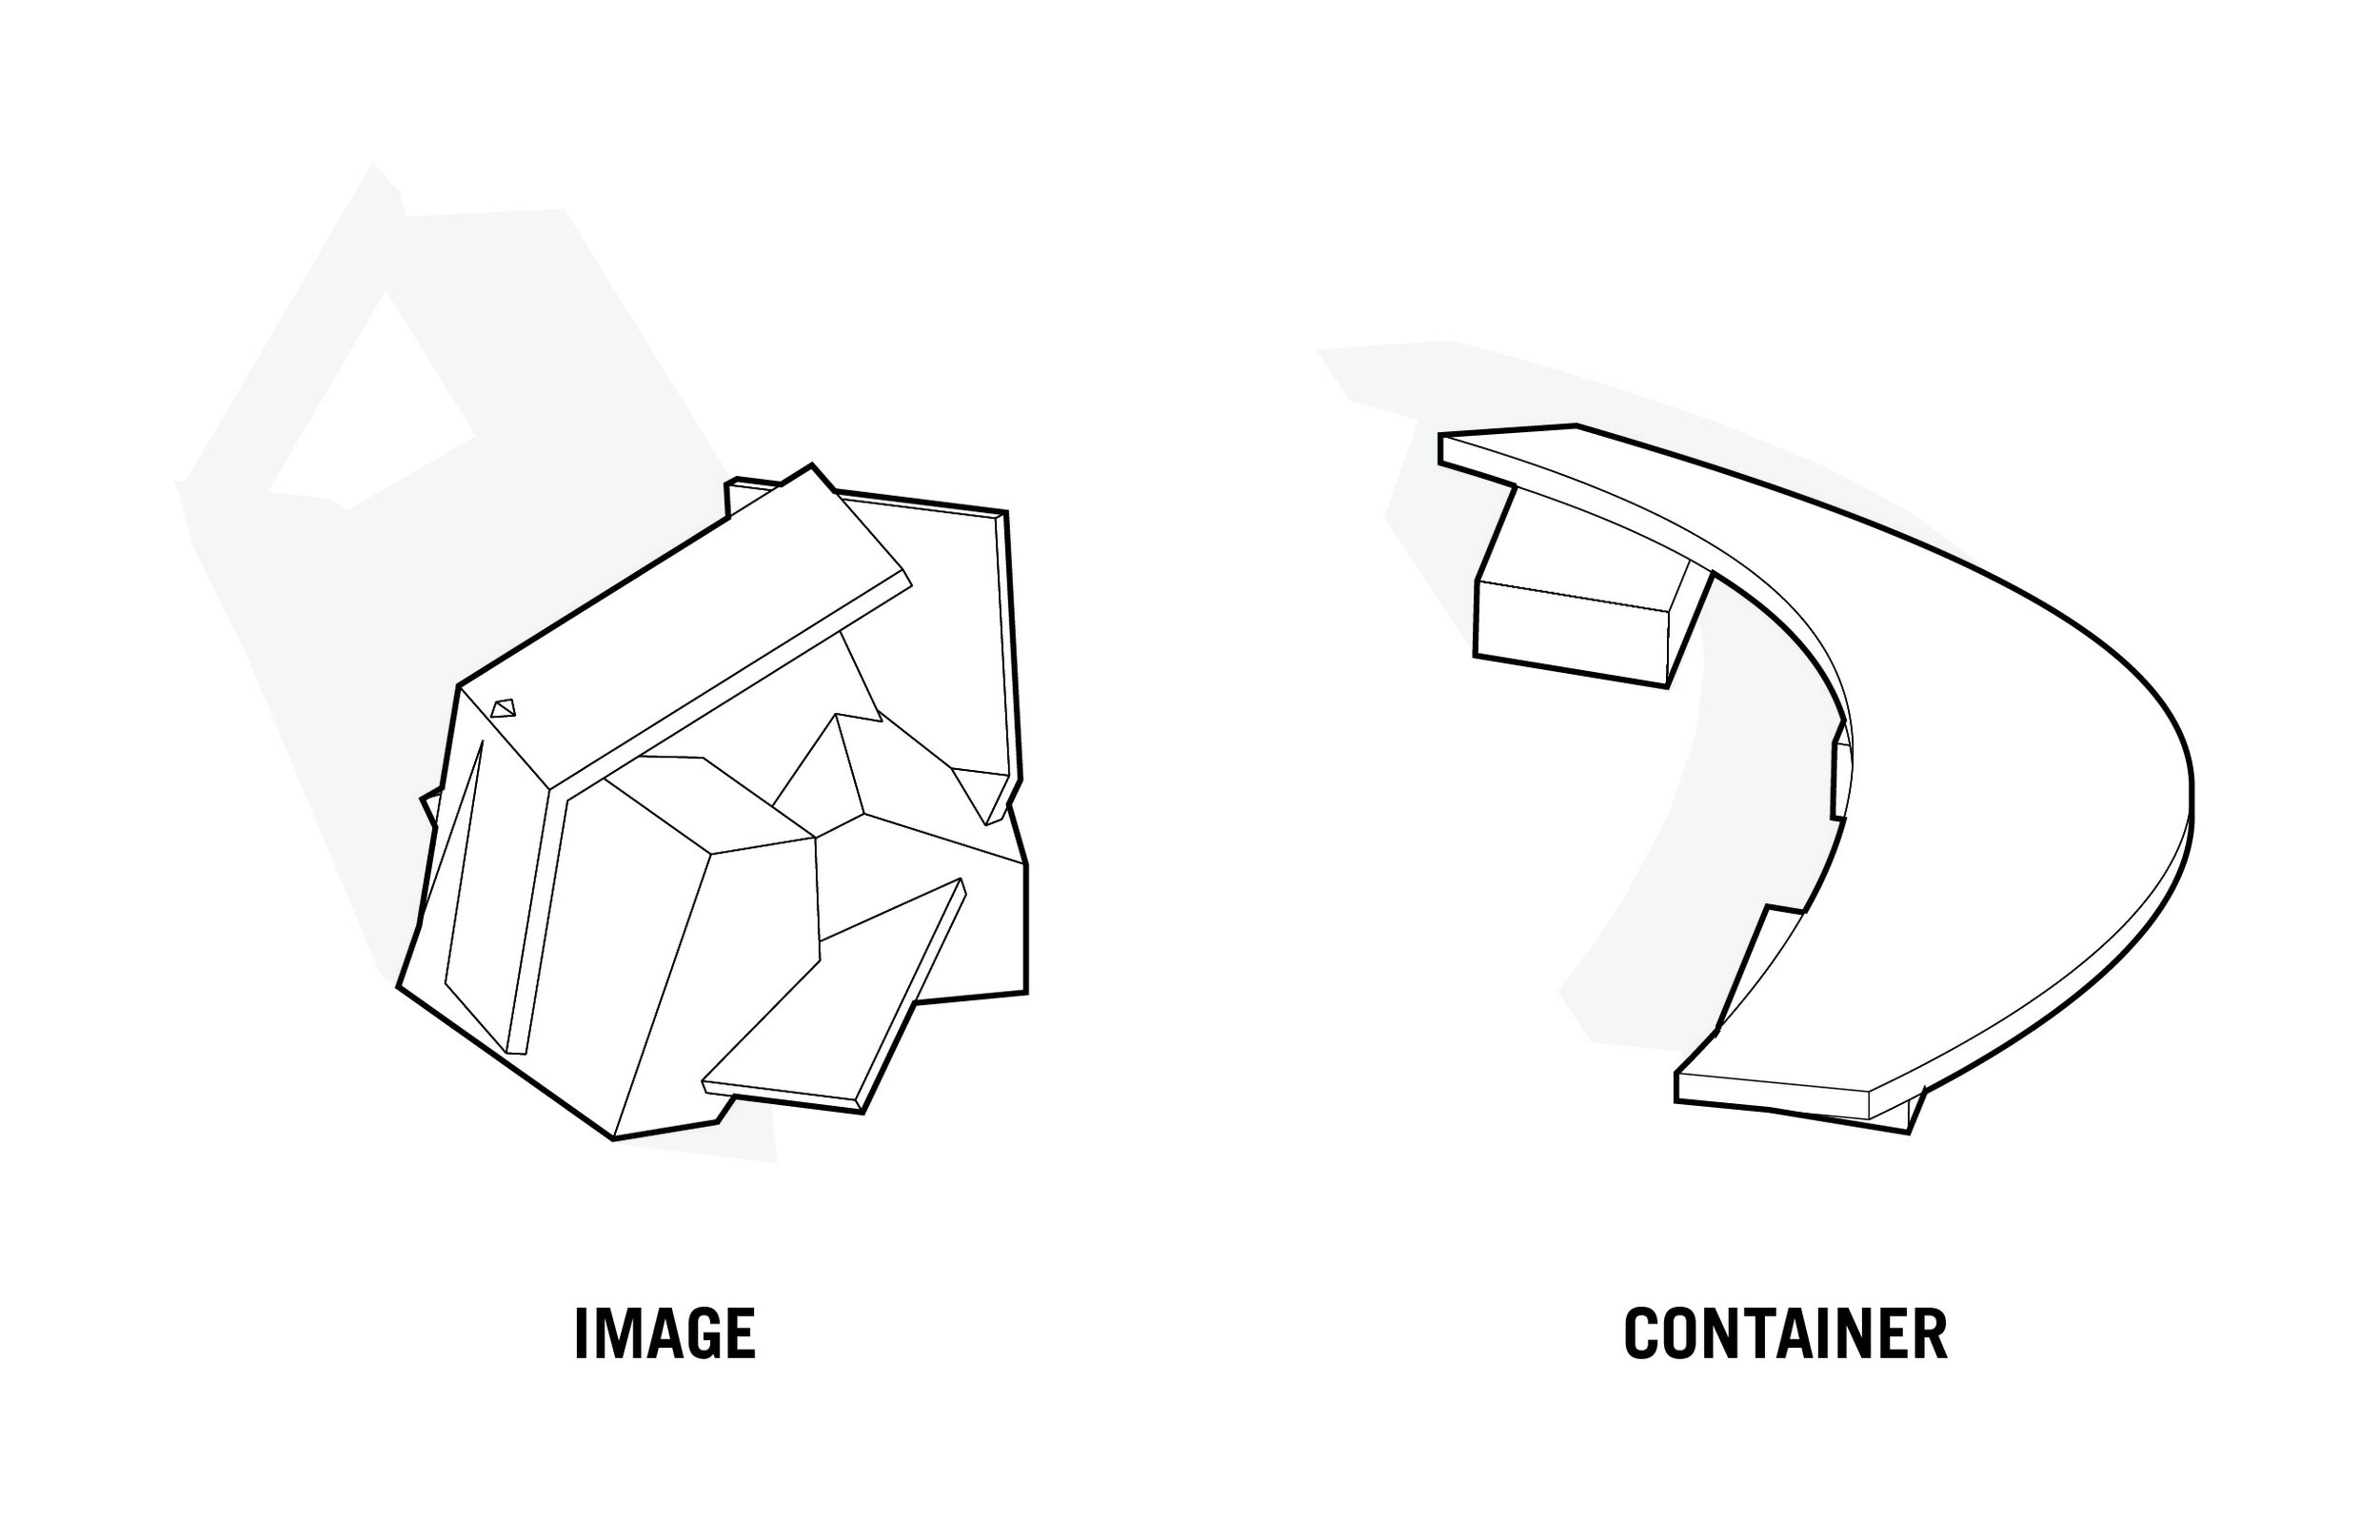 skdeish_IMAGE_CONTAINER dgm-01.jpg